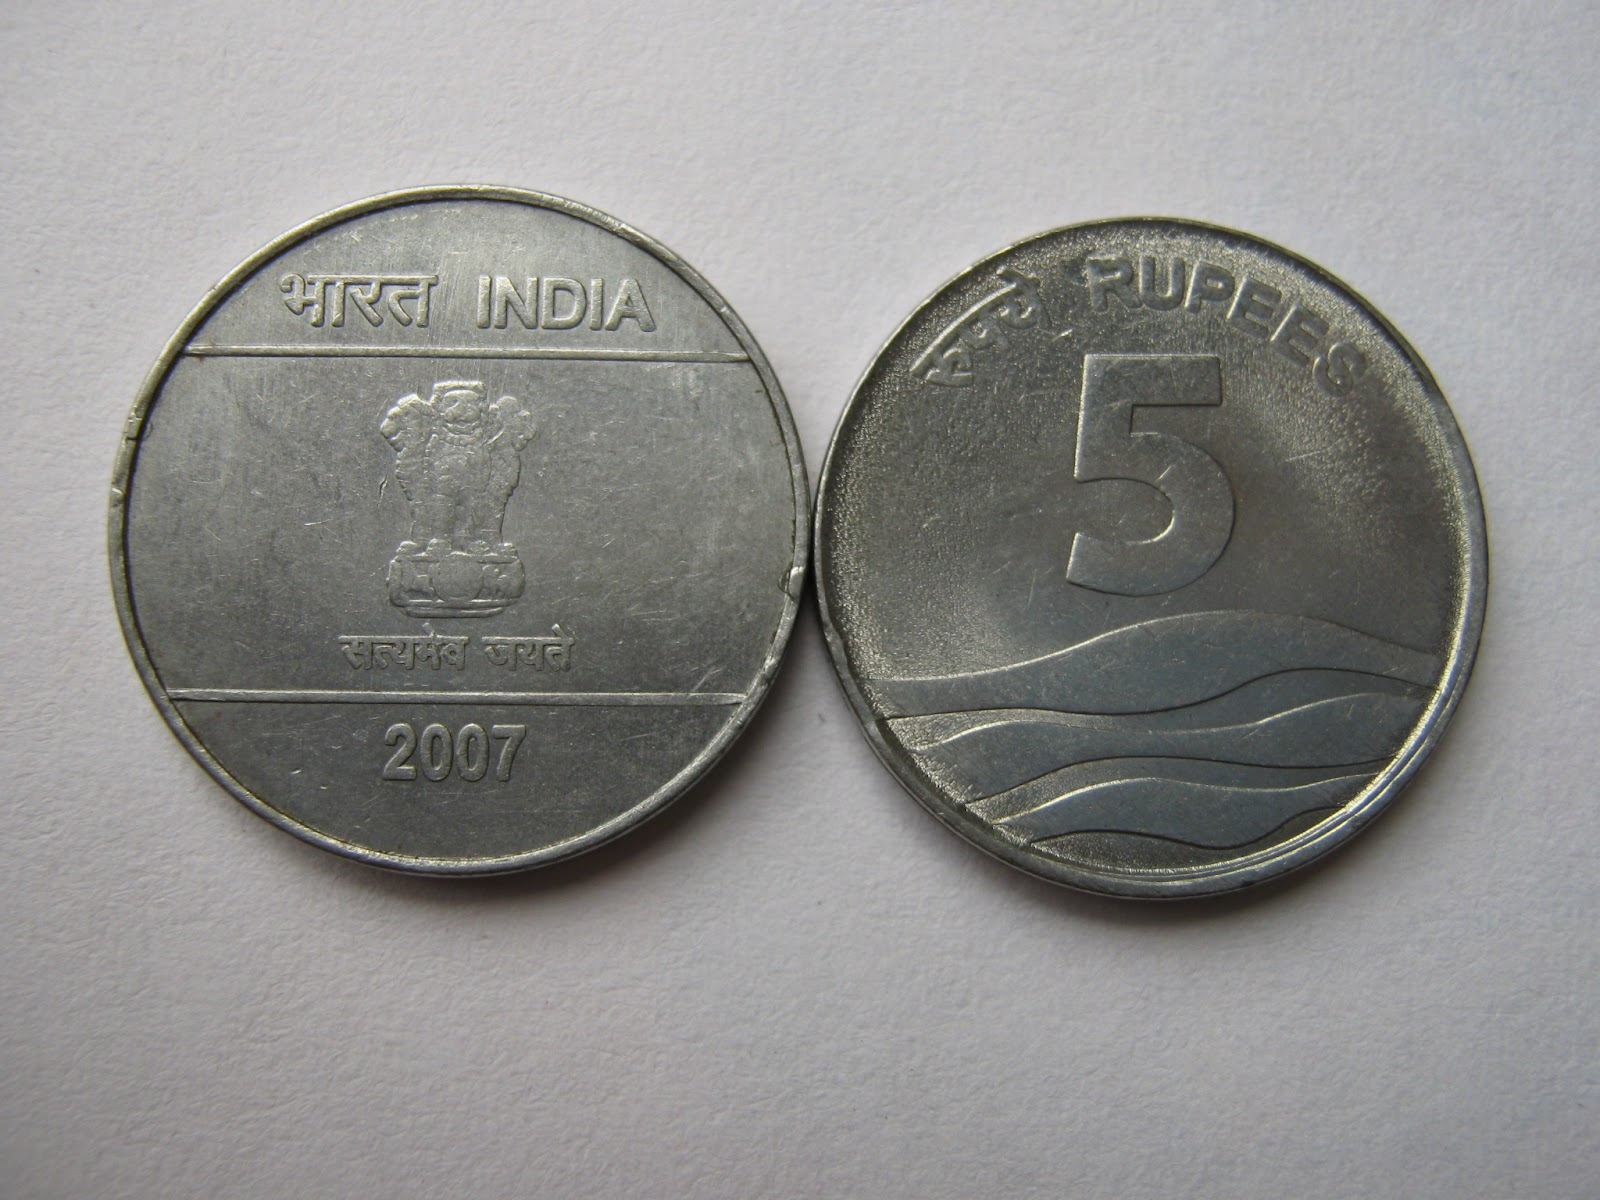 Rare British Amp Republic India Currency March 2012